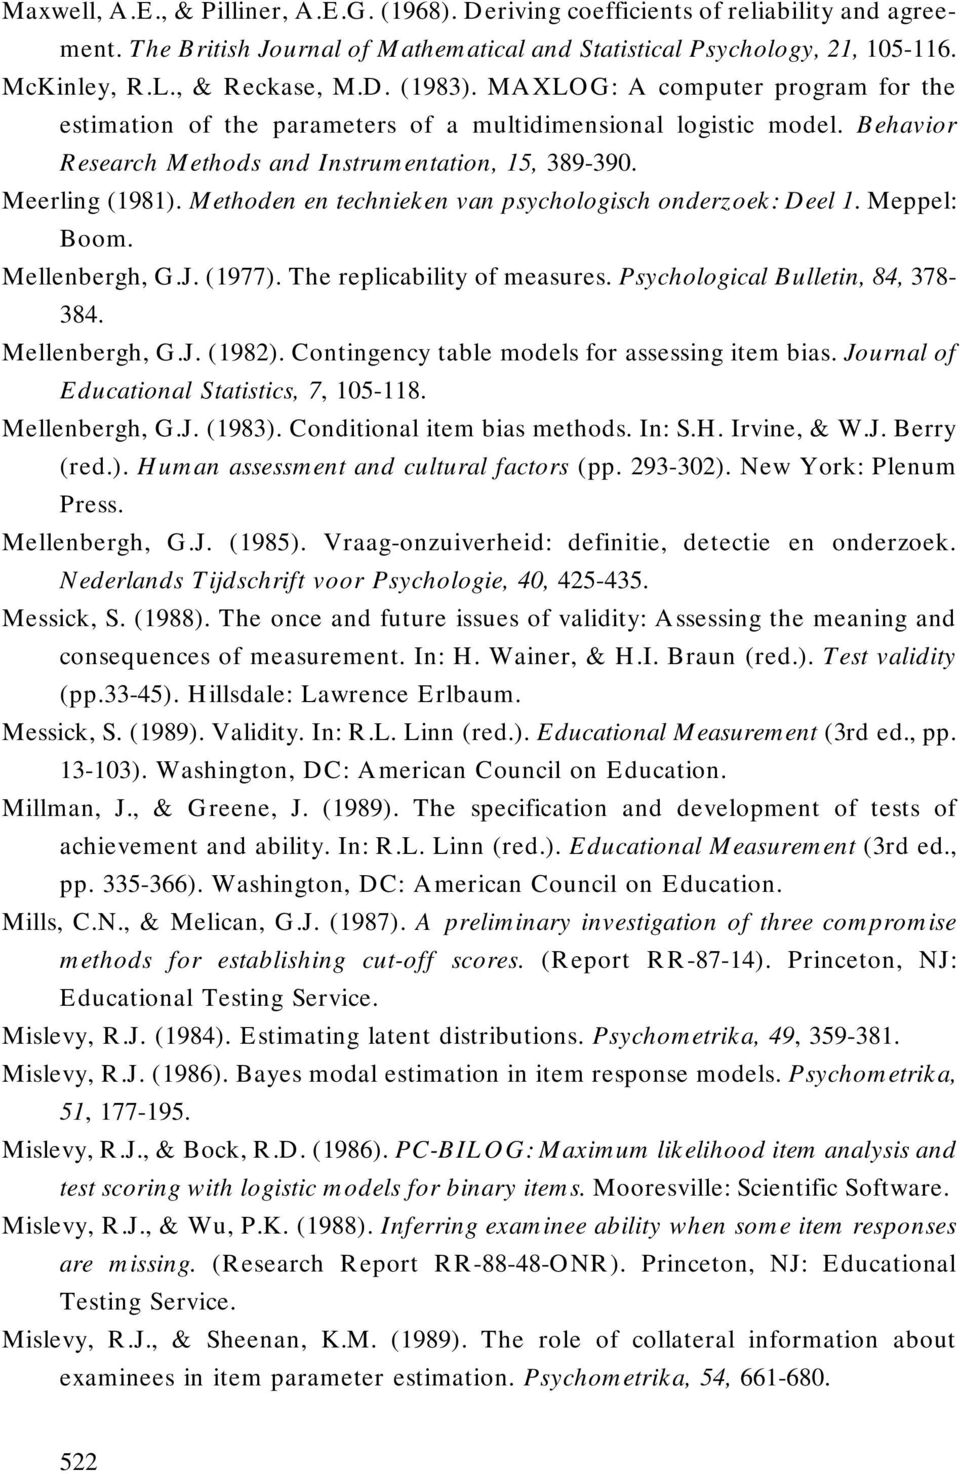 Methoden en technieken van psychologisch onderzoek: Deel 1. Meppel: Boom. Mellenbergh, G.J. (1977). The replicability of measures. Psychological Bulletin, 84, 378-384. Mellenbergh, G.J. (1982).